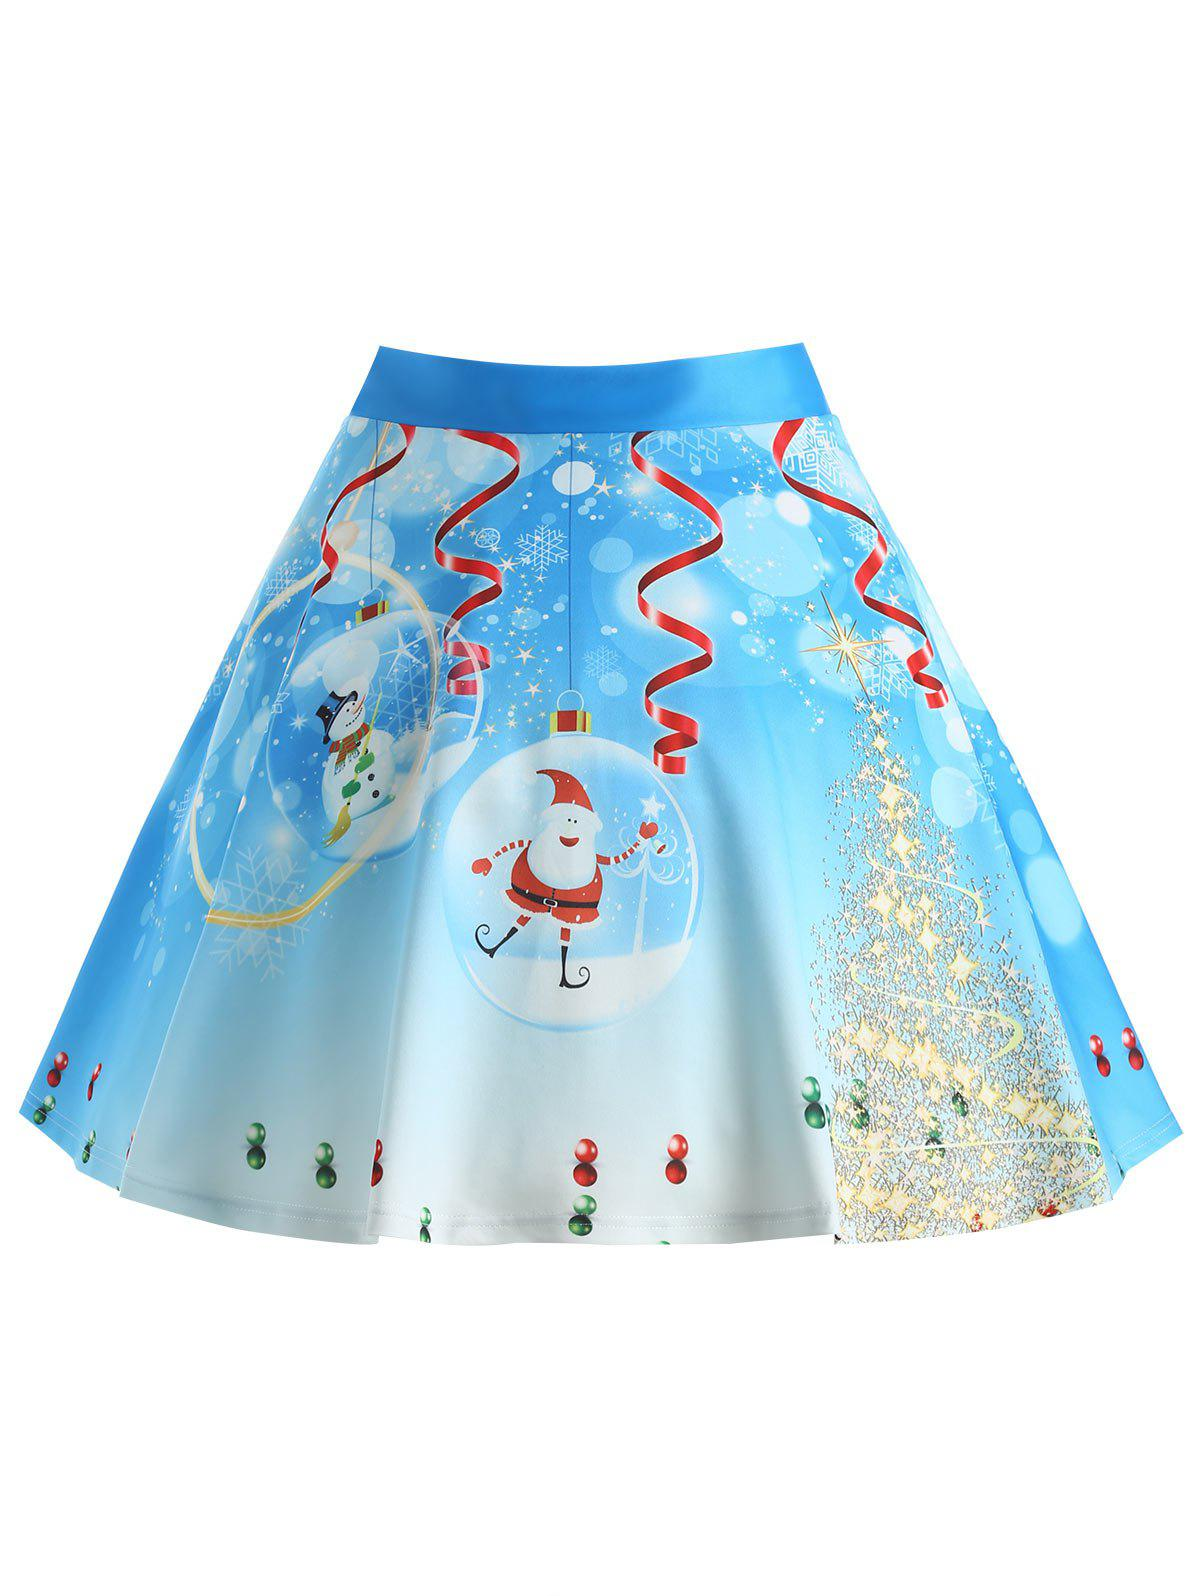 Christmas Tree Santa Claus Print Plus Size SkirtWOMEN<br><br>Size: 5XL; Color: BLUE; Material: Polyester; Length: Knee-Length; Silhouette: A-Line; Pattern Type: Plant,Star; Season: Winter; With Belt: No; Weight: 0.3750kg; Package Contents: 1 x Skirt;